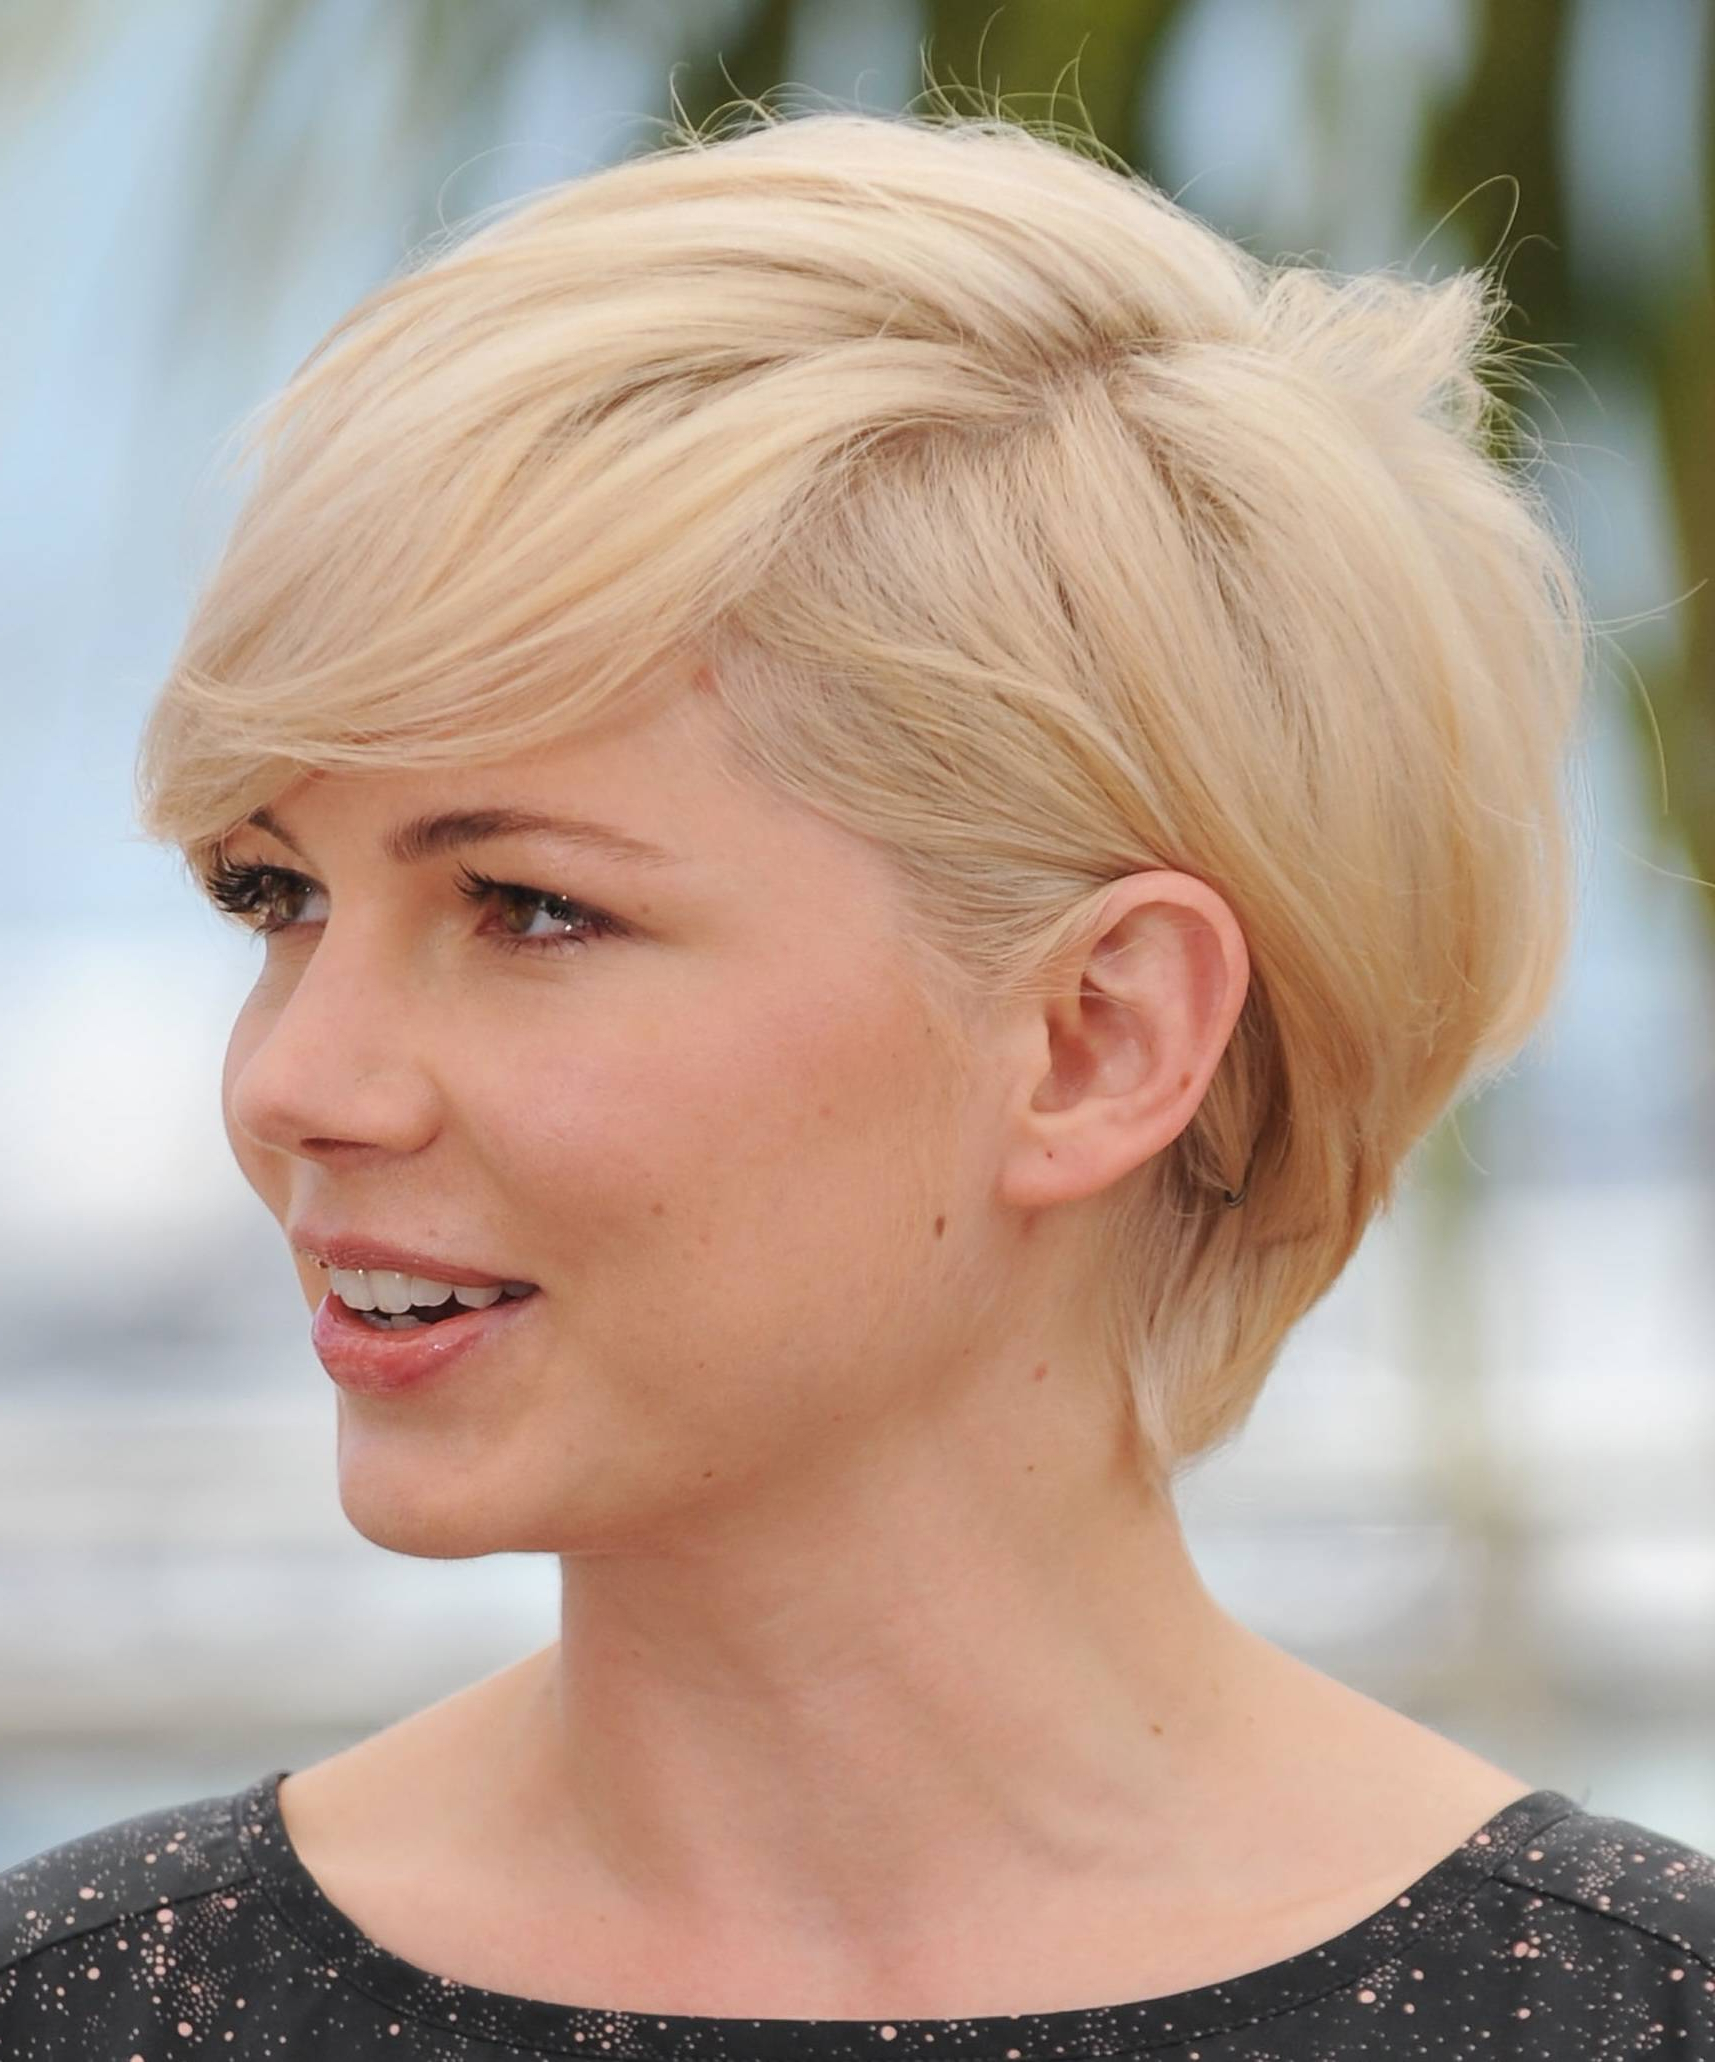 The Blonde Short Hairstyles Are Mostly Wornprettiest Celebrities Intended For Celebrities Short Haircuts (View 17 of 25)